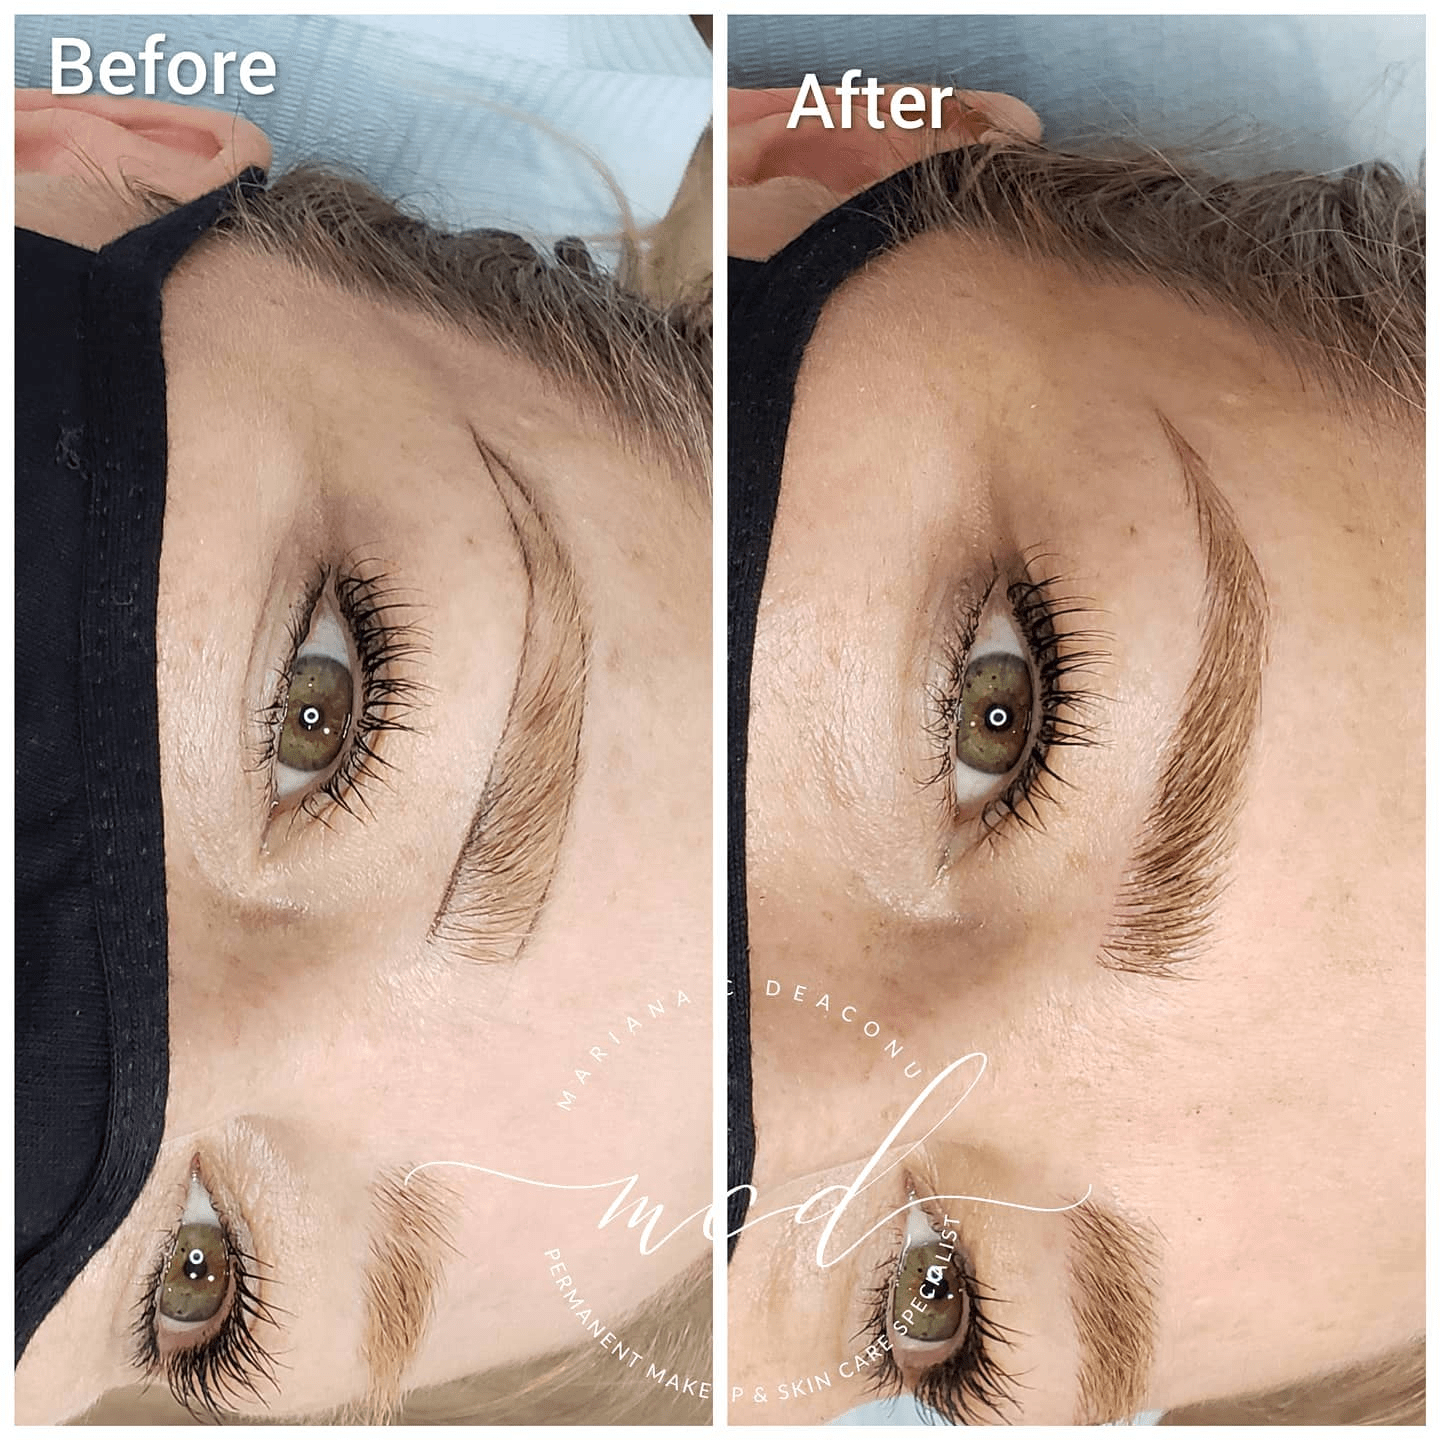 MicroBeauty Salon Offers Exceptional Permanent Makeup Services